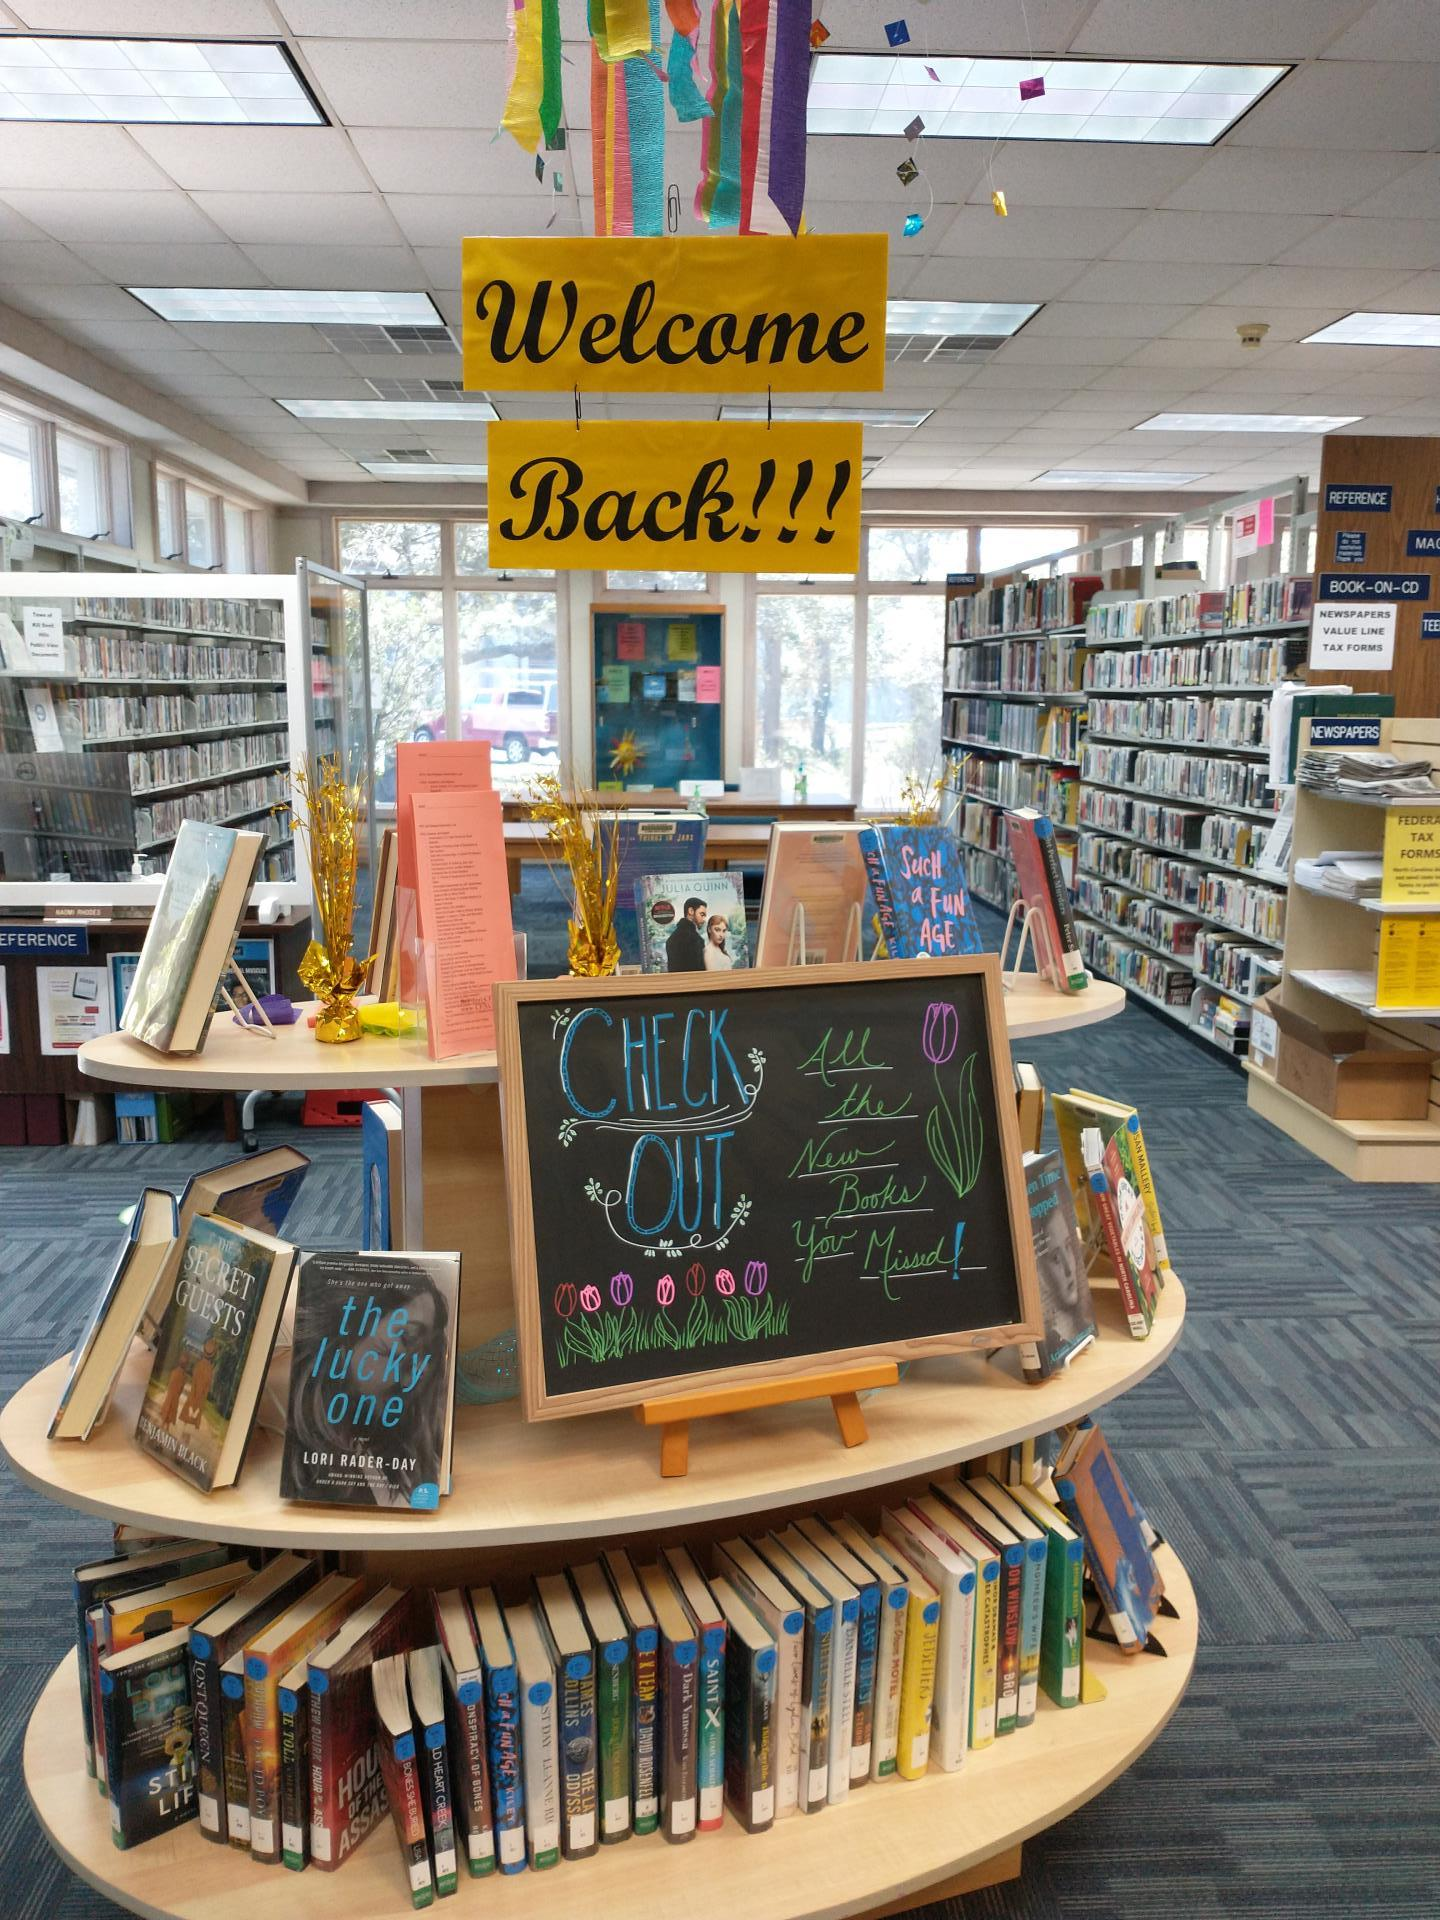 Kill devil hills library dare county nc lots of books featuring do it yourself projects including home repair beer making raising chickens beekeeping home decorating crafts woodworking solutioingenieria Choice Image